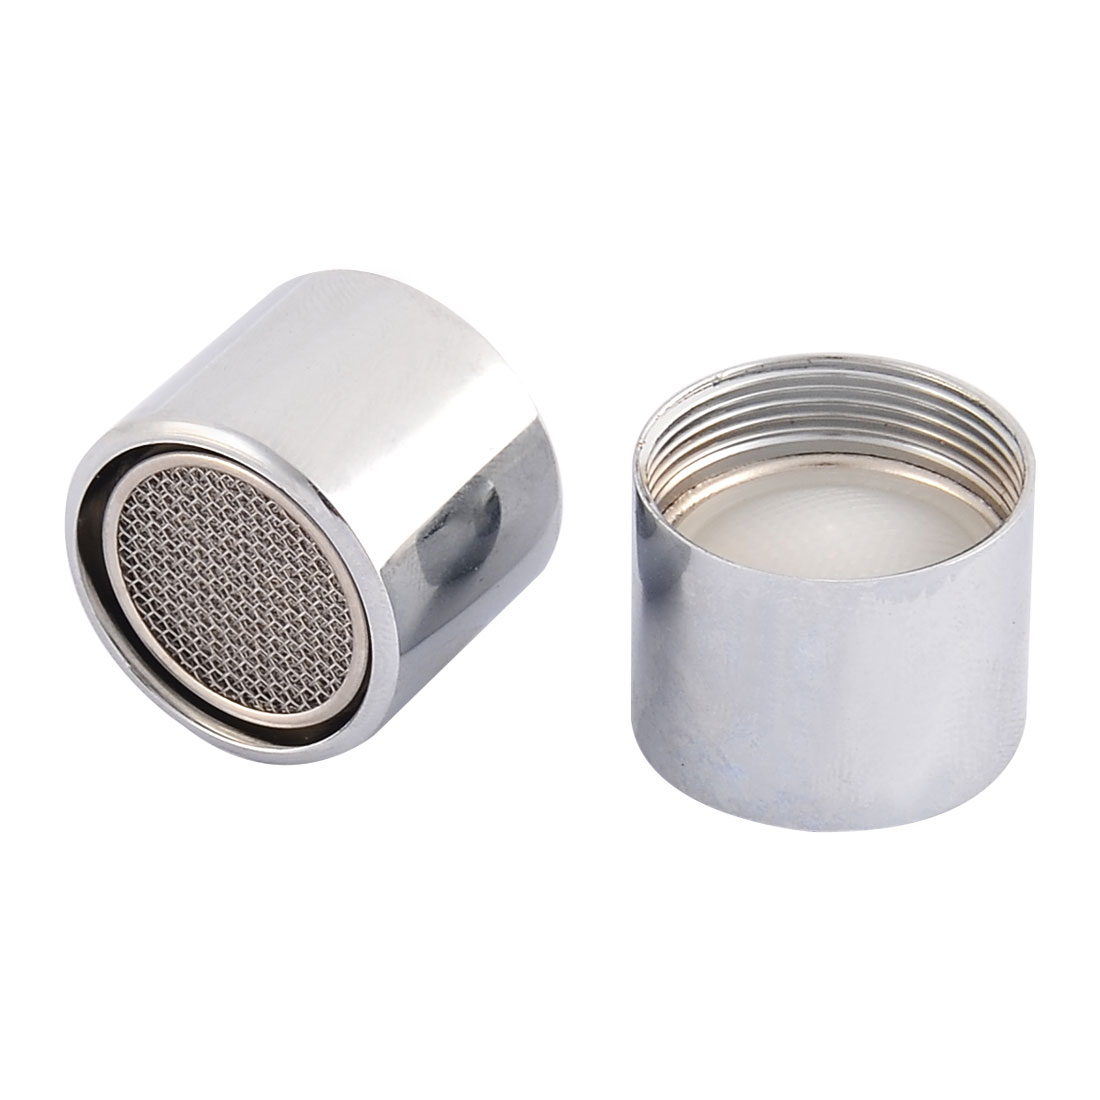 Household Stainless Steel Faucet Filter Net Nozzle 21mm Female Thread 2 Pcs